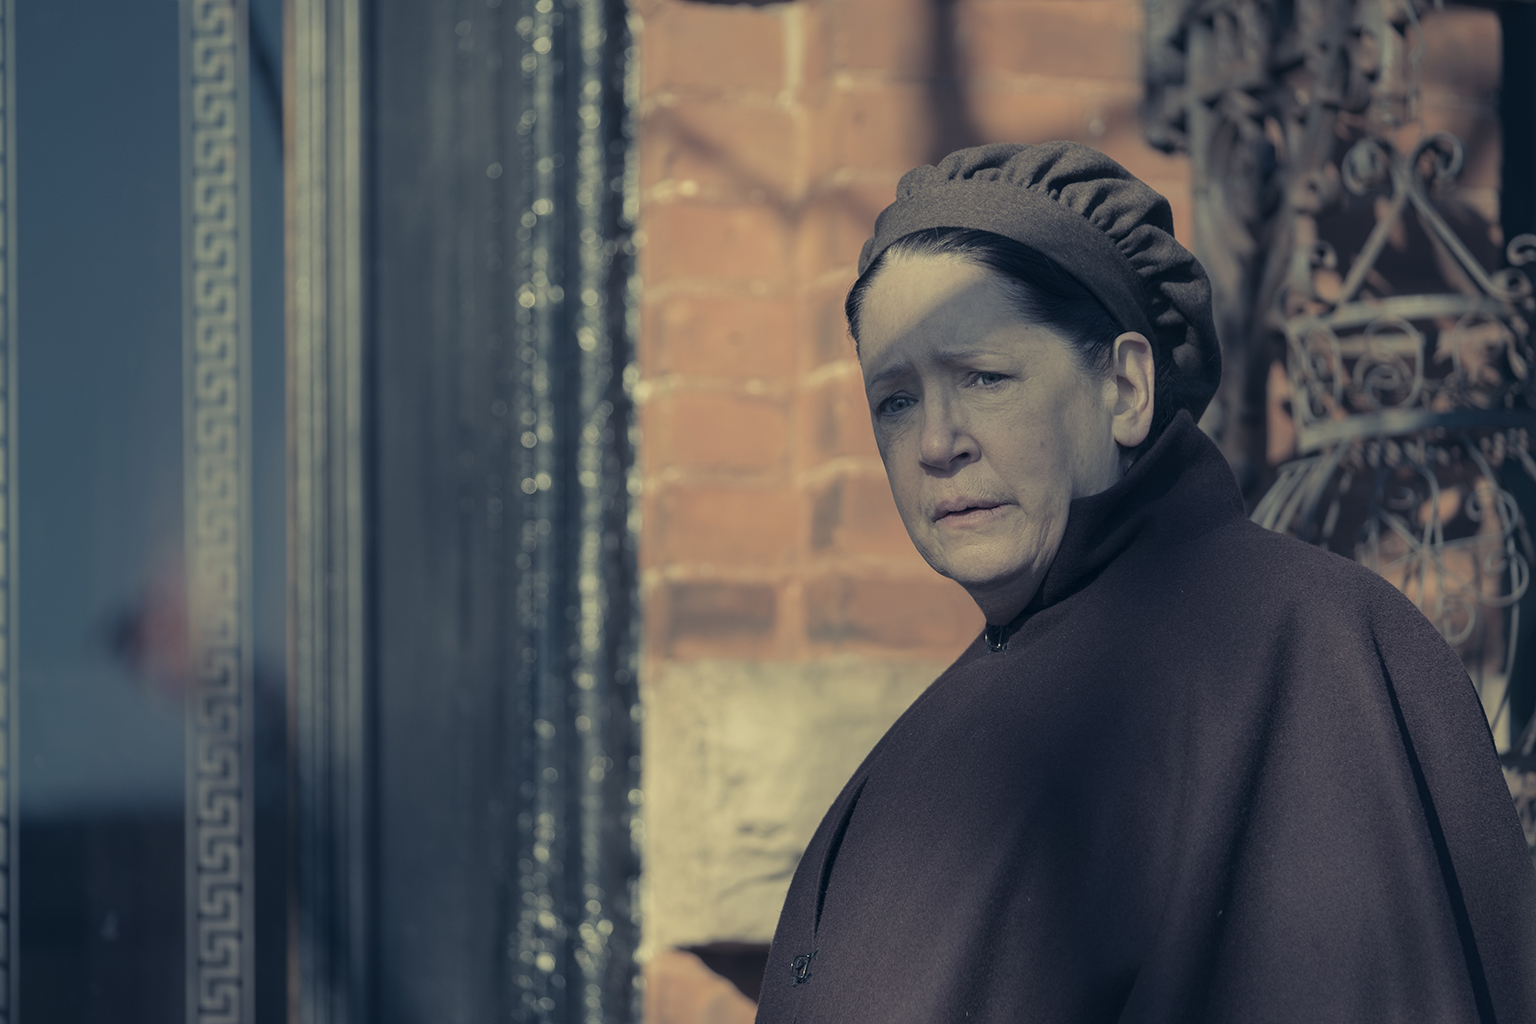 Pictured: Aunt Lydia (Ann Dowd) in Hulu's 'The Handmaid's Tale'